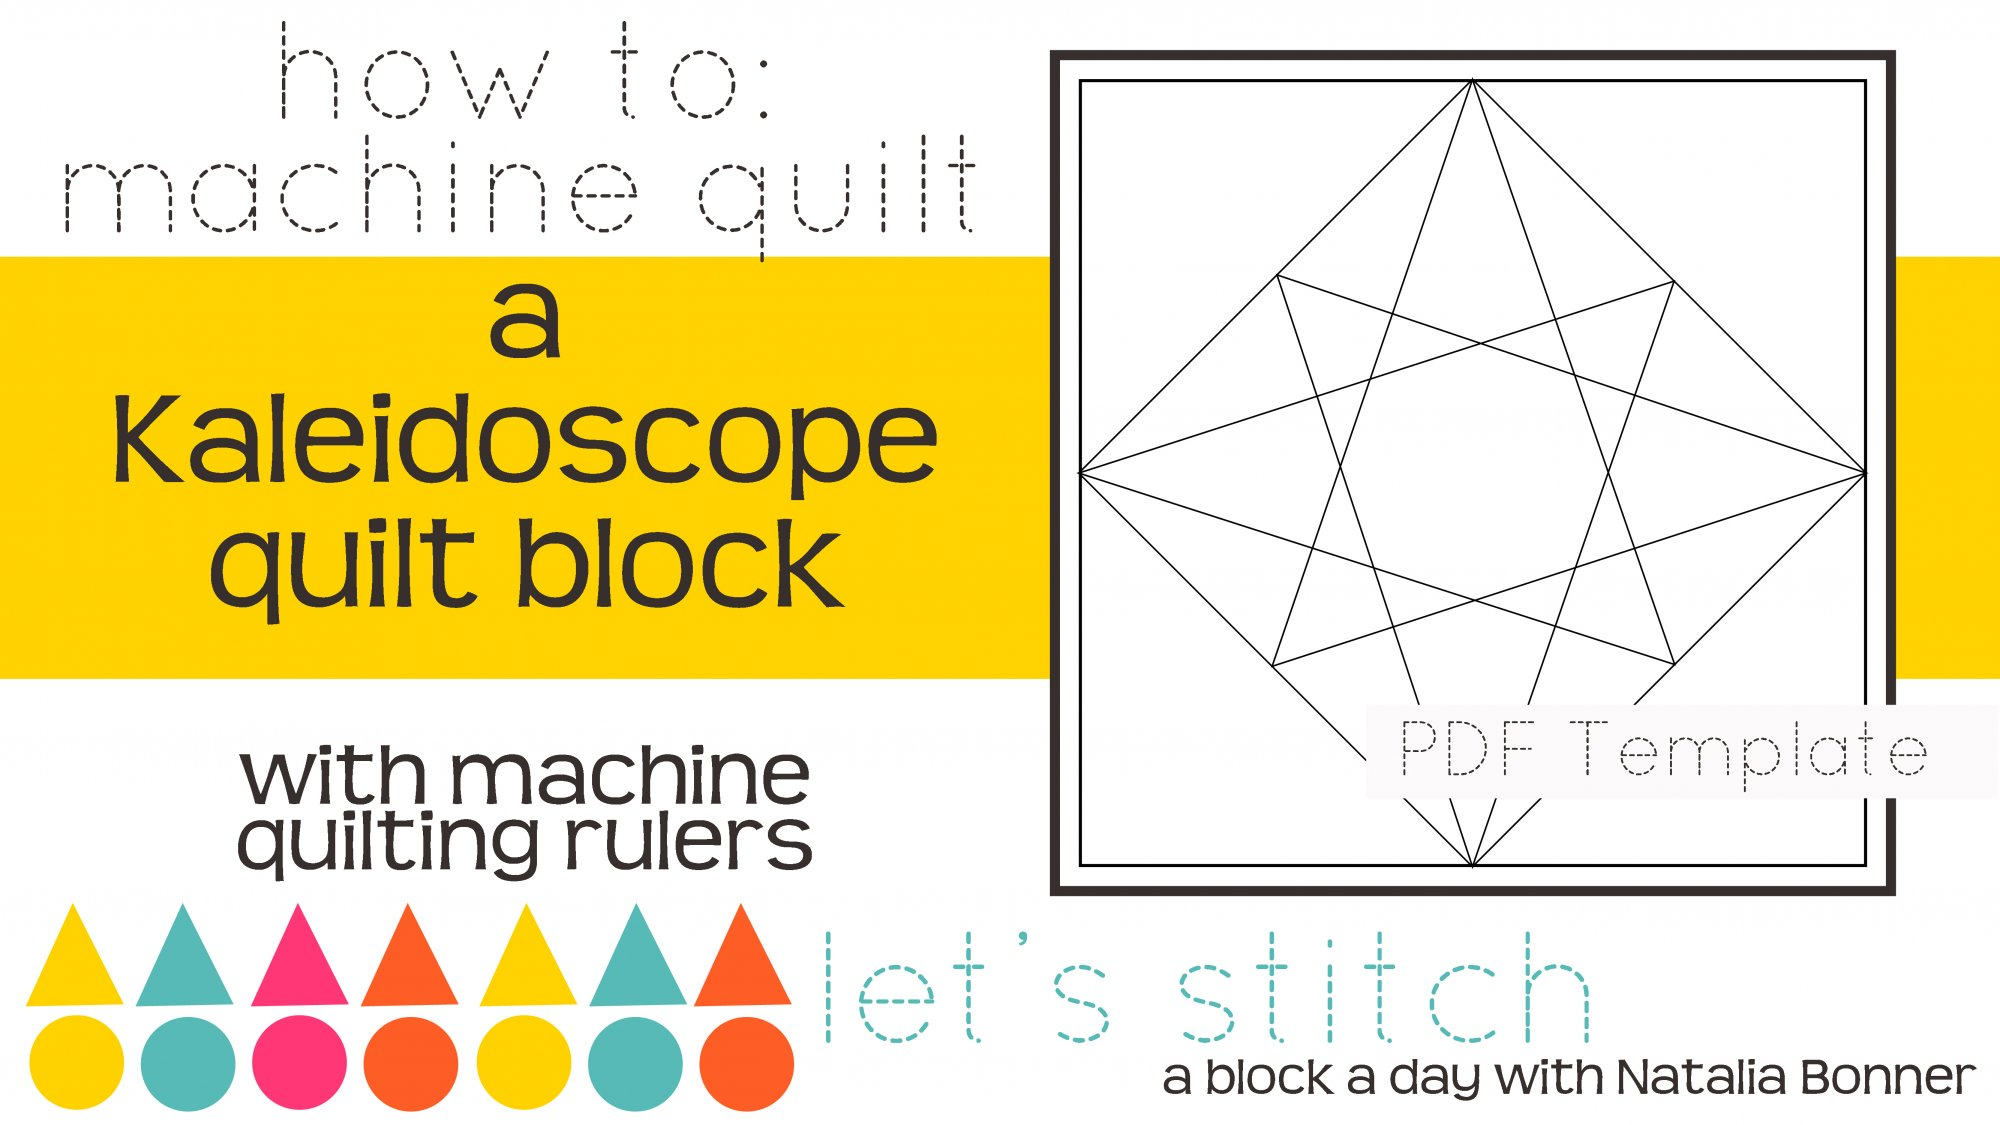 Let's Stitch - A Block a Day With Natalia Bonner - PDF - Kaleidoscope